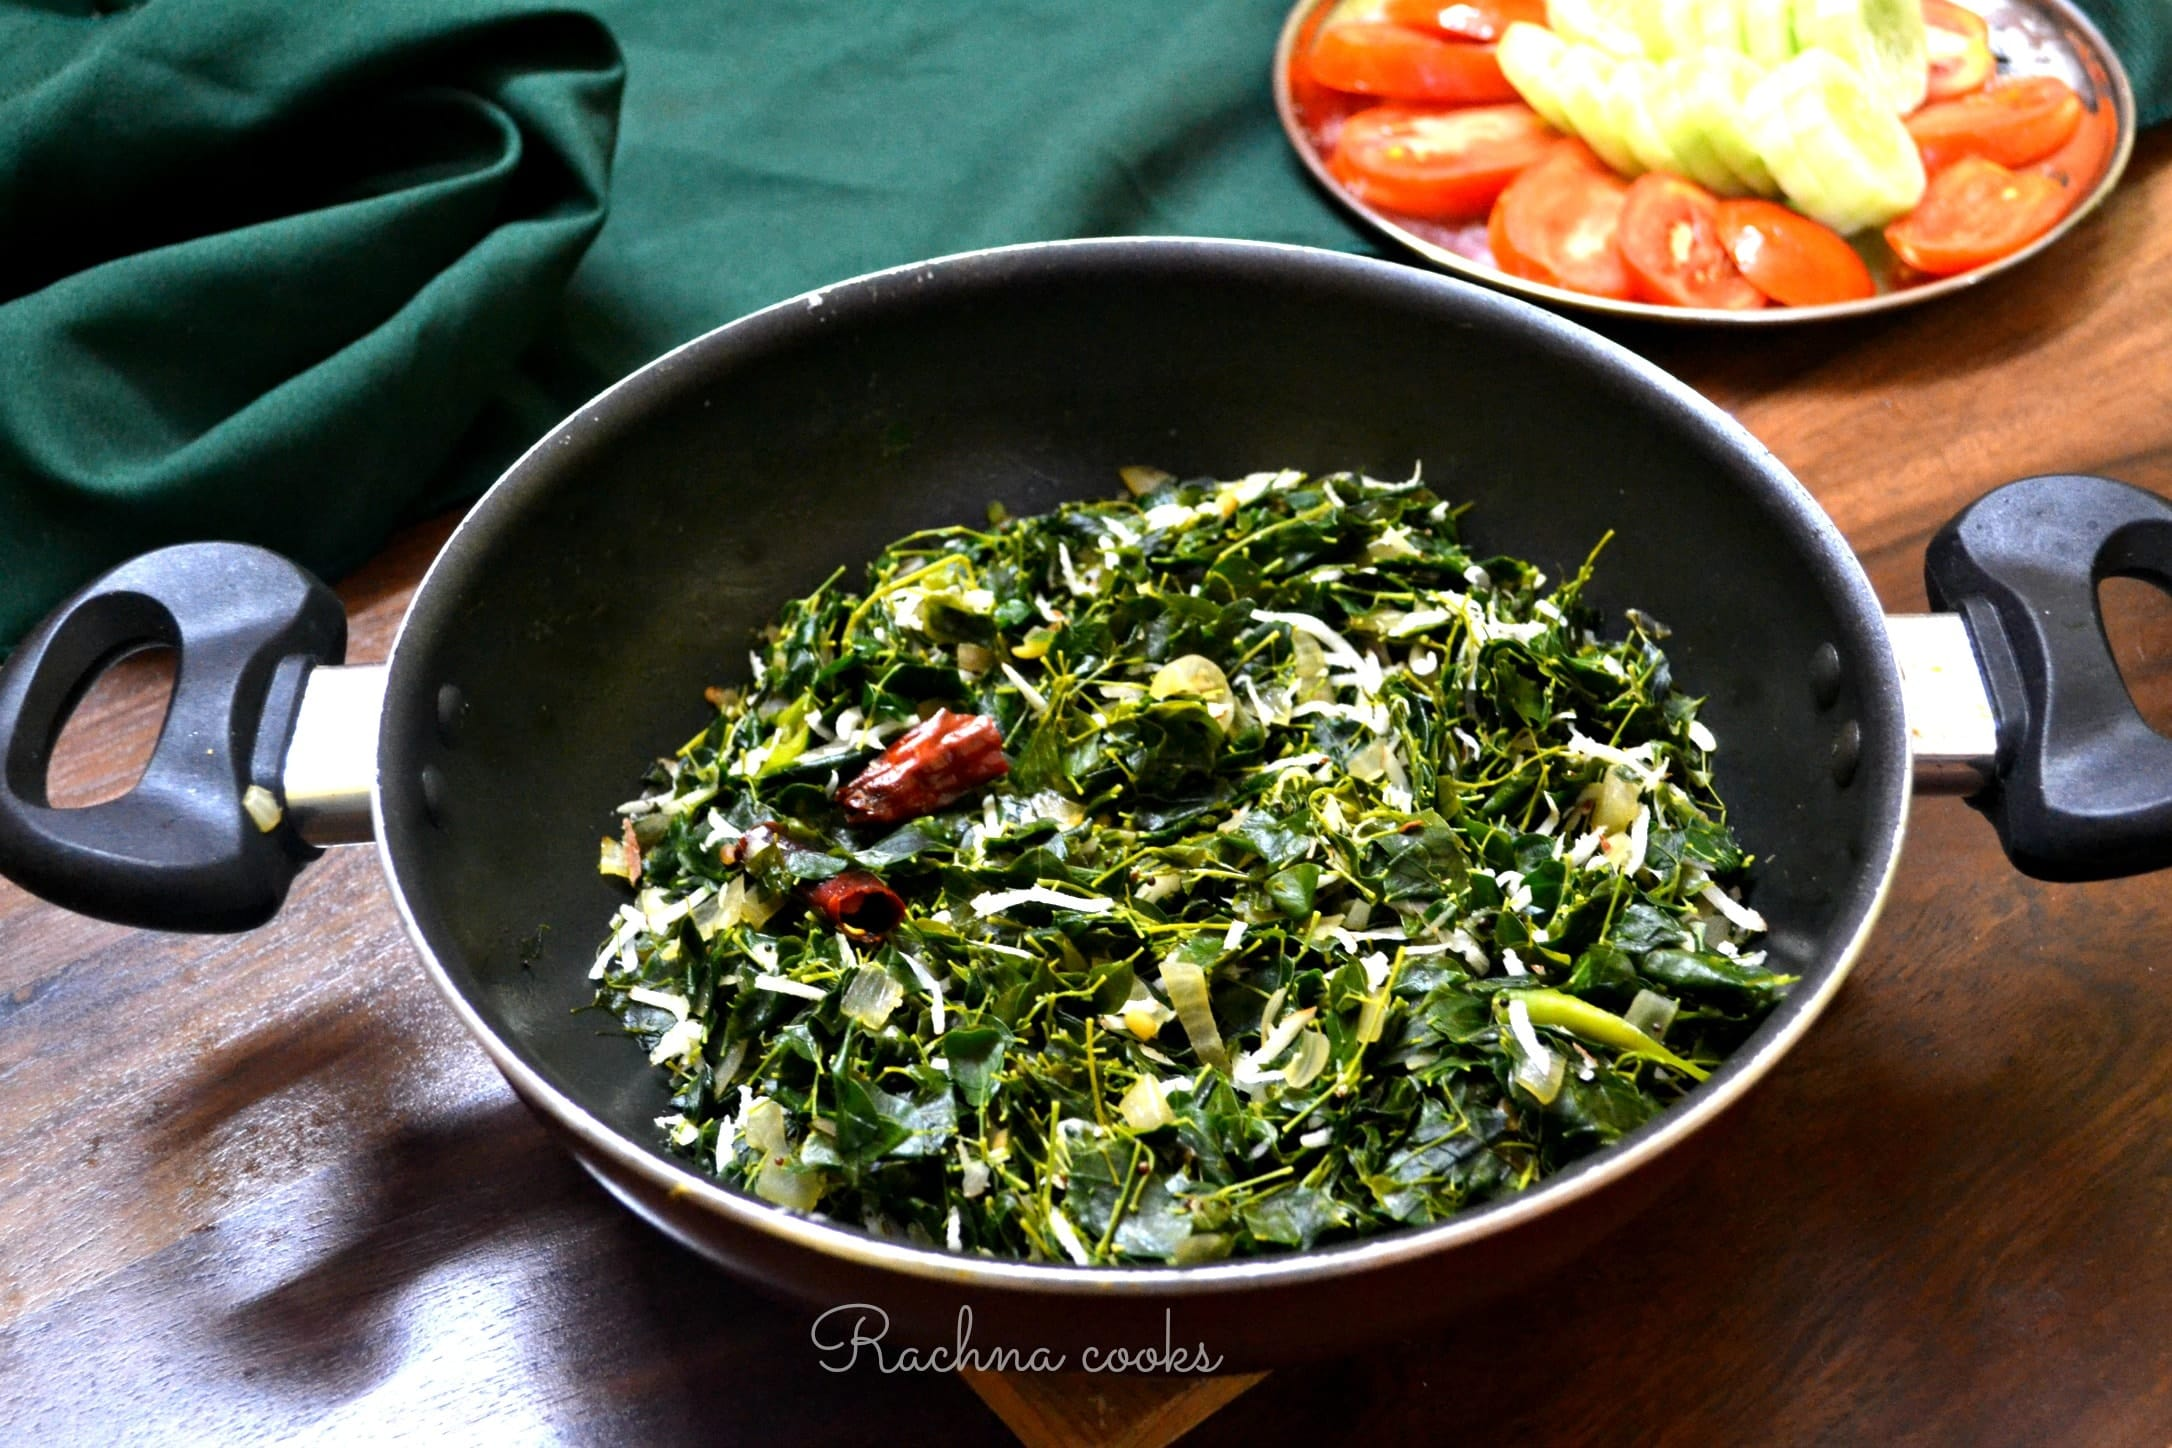 Moringa Leaves Stir fry | Drumstick Leaves Stir fry Recipe